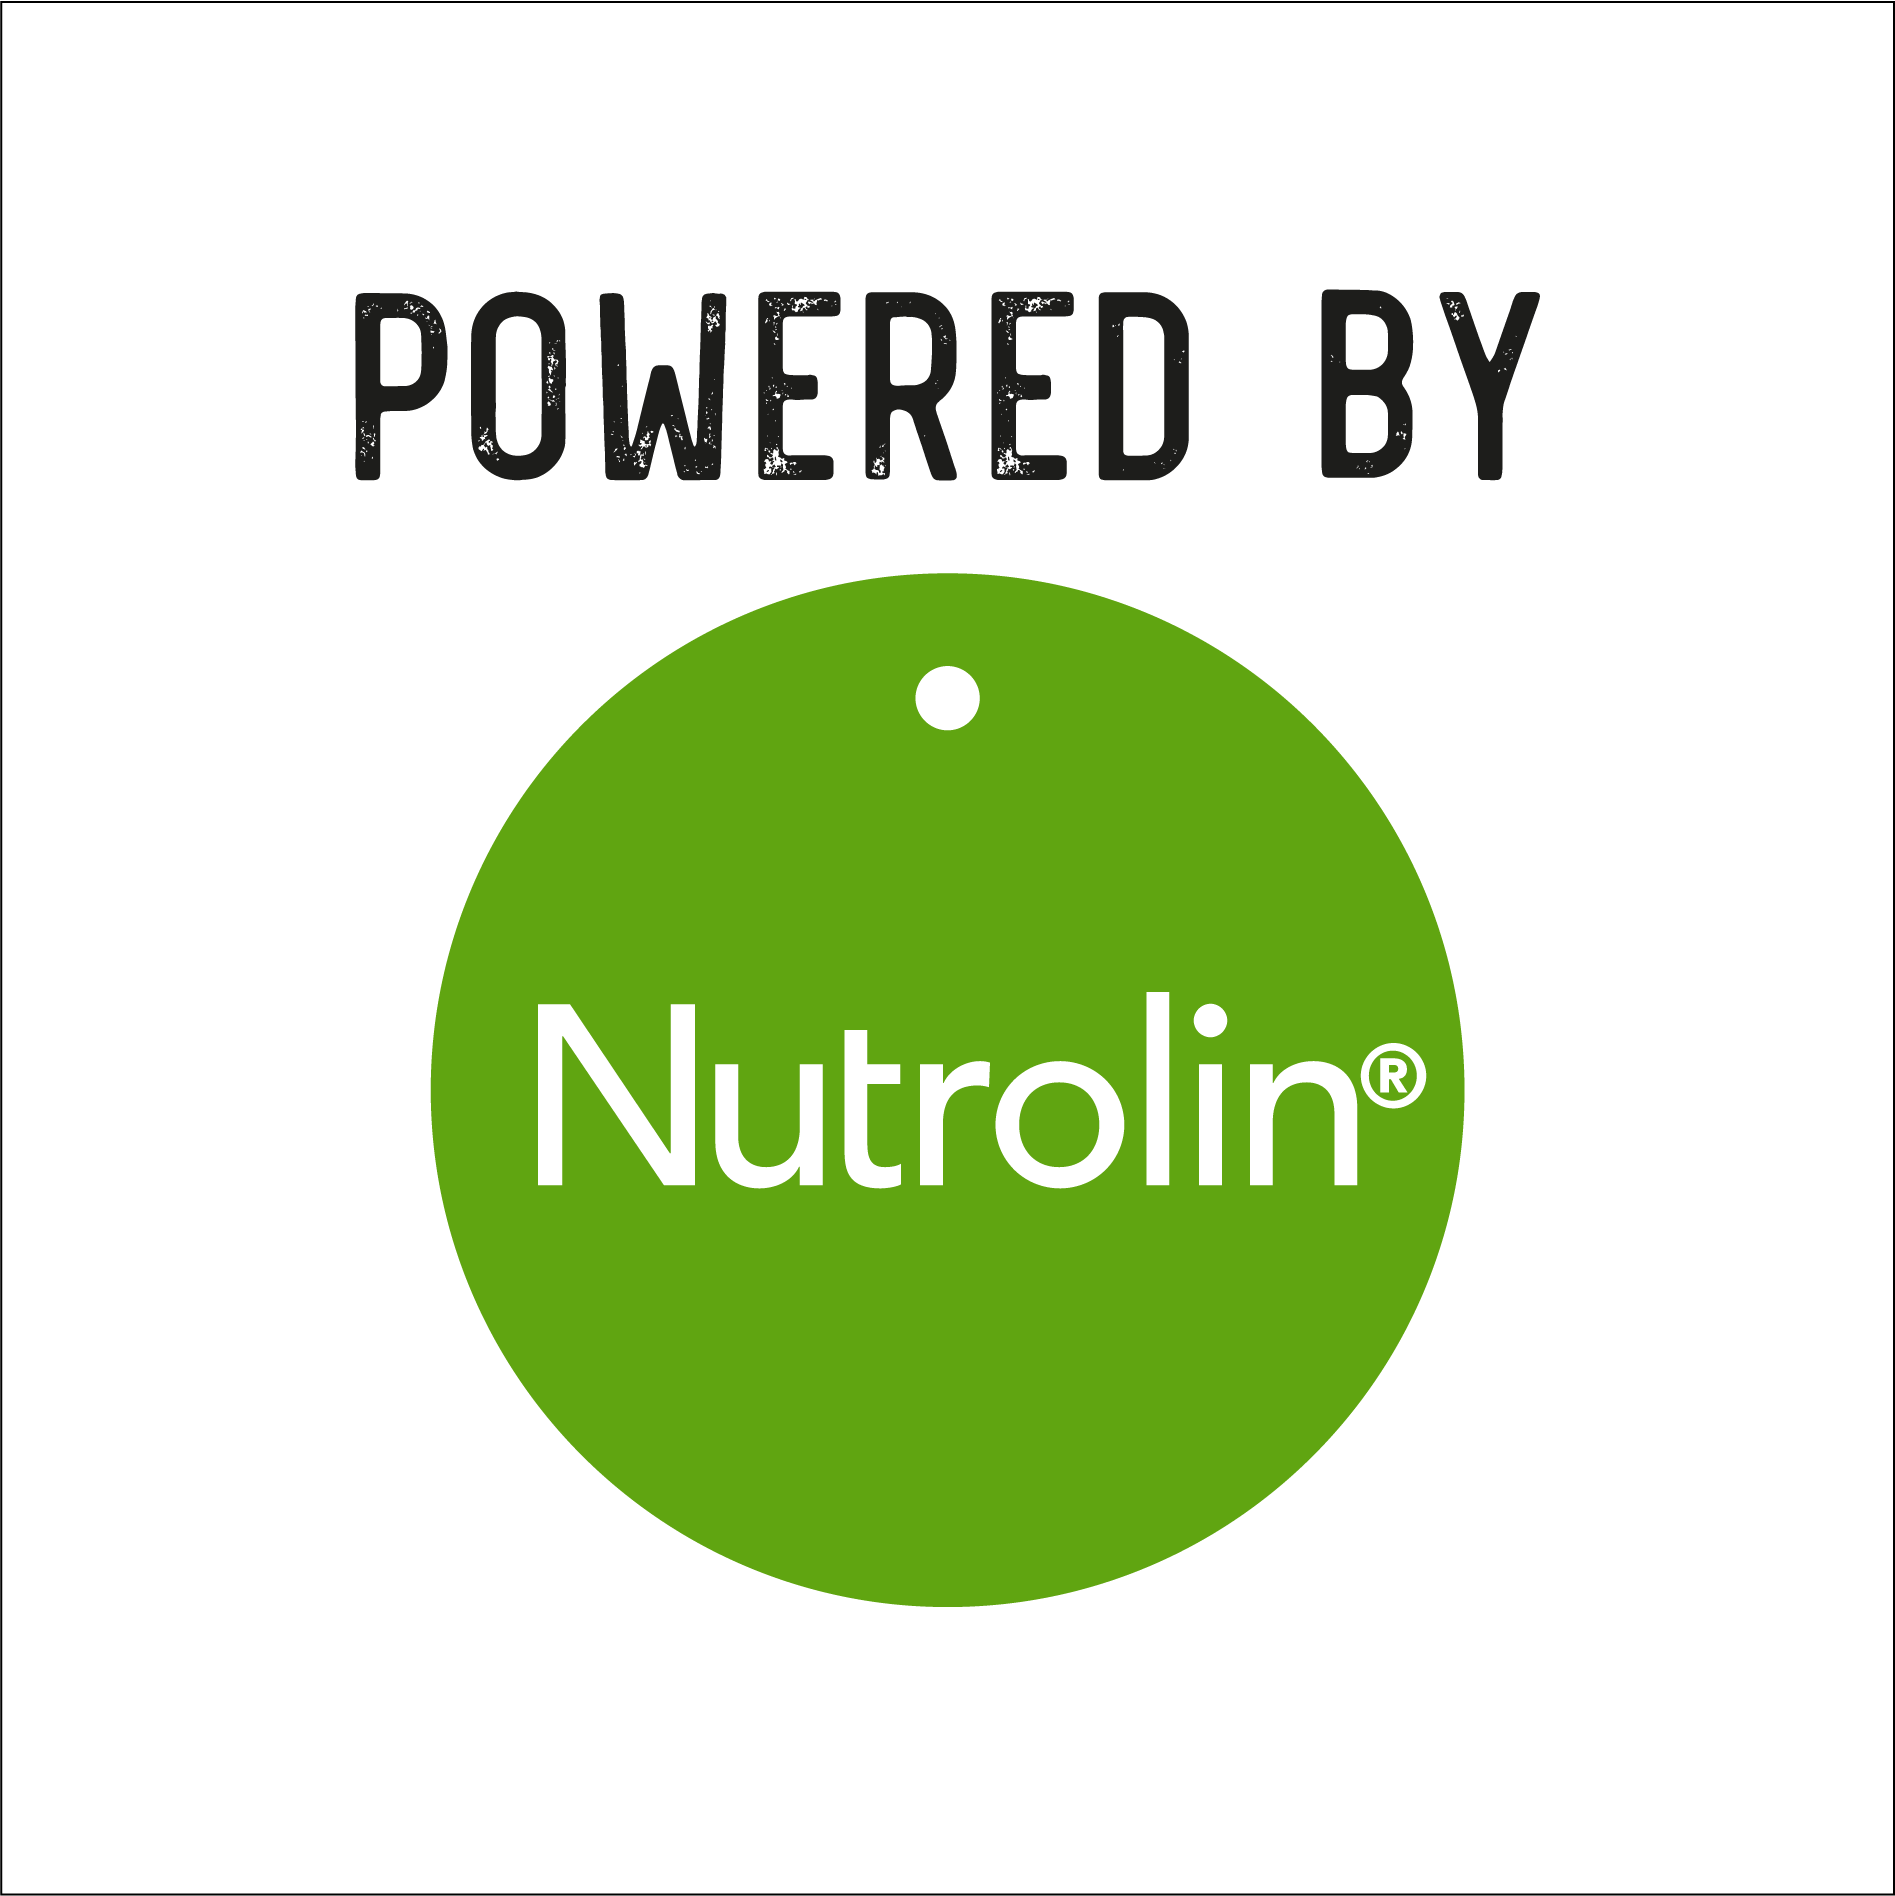 Powered by Nutrolin